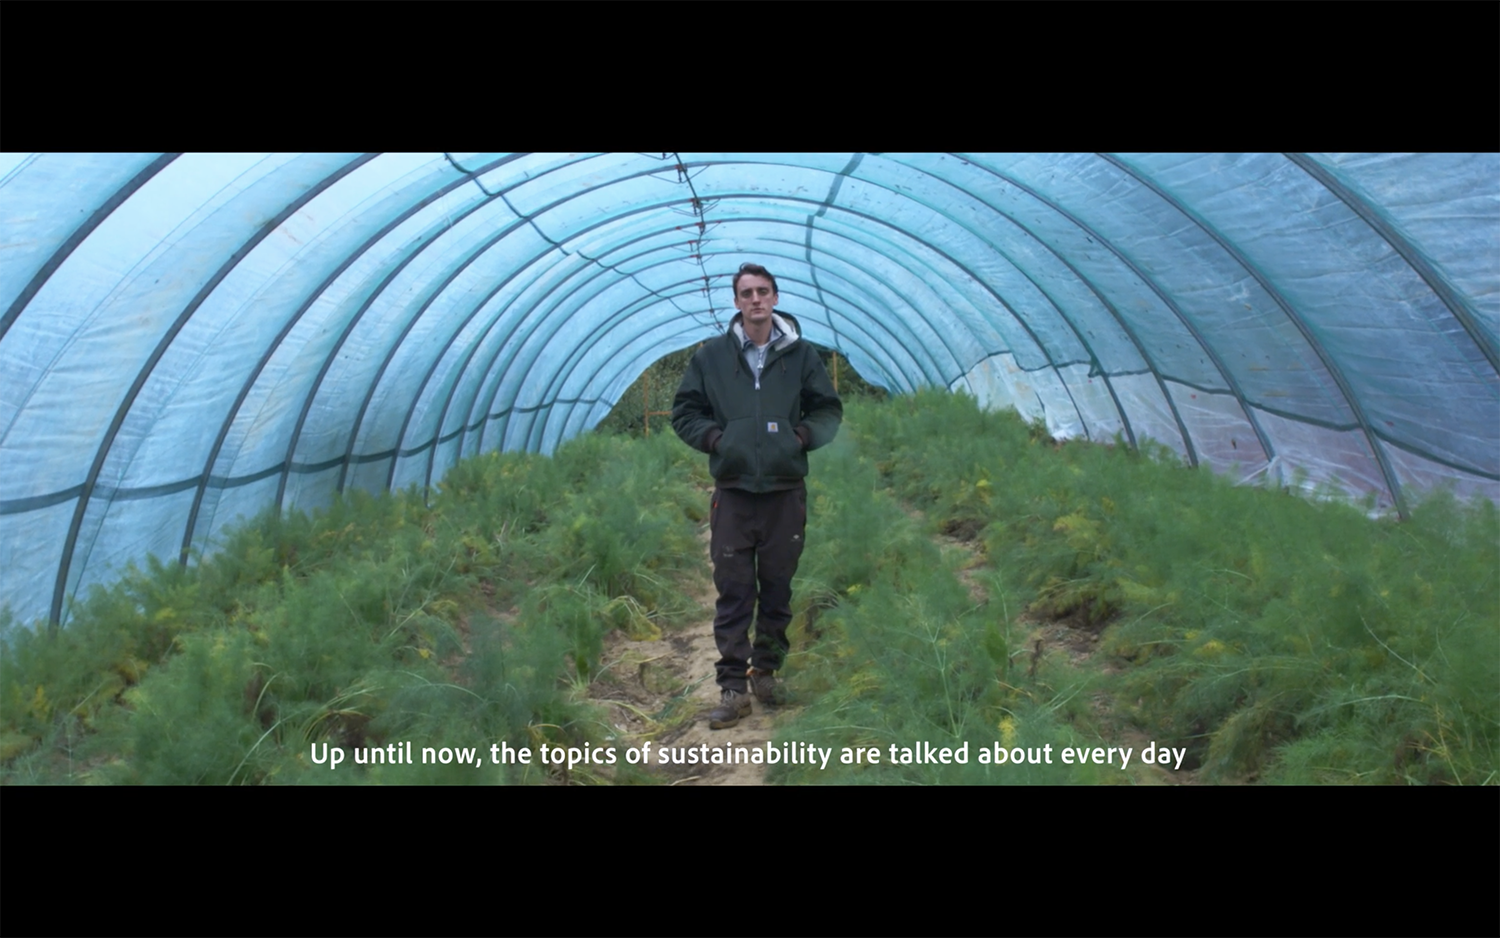 Man standing in a polytunnel